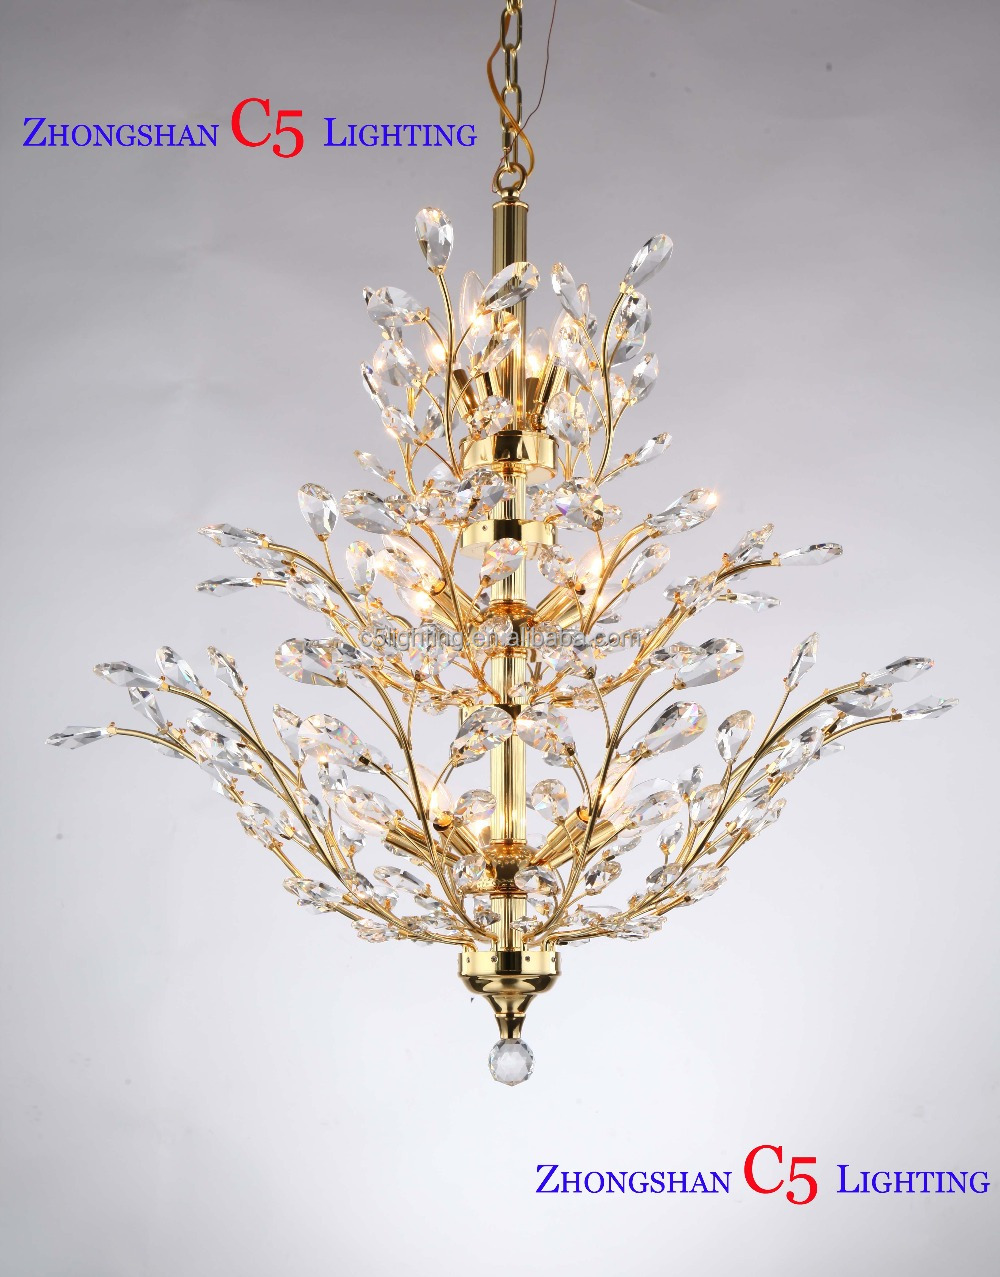 Made in china chandeliers k9 crystal pendant lighting 2 tiler made in china chandeliers k9 crystal pendant lighting 2 tiler hanging flush mount gold finish buy made in china cheap price crystal lamps md42054 18lmade aloadofball Choice Image